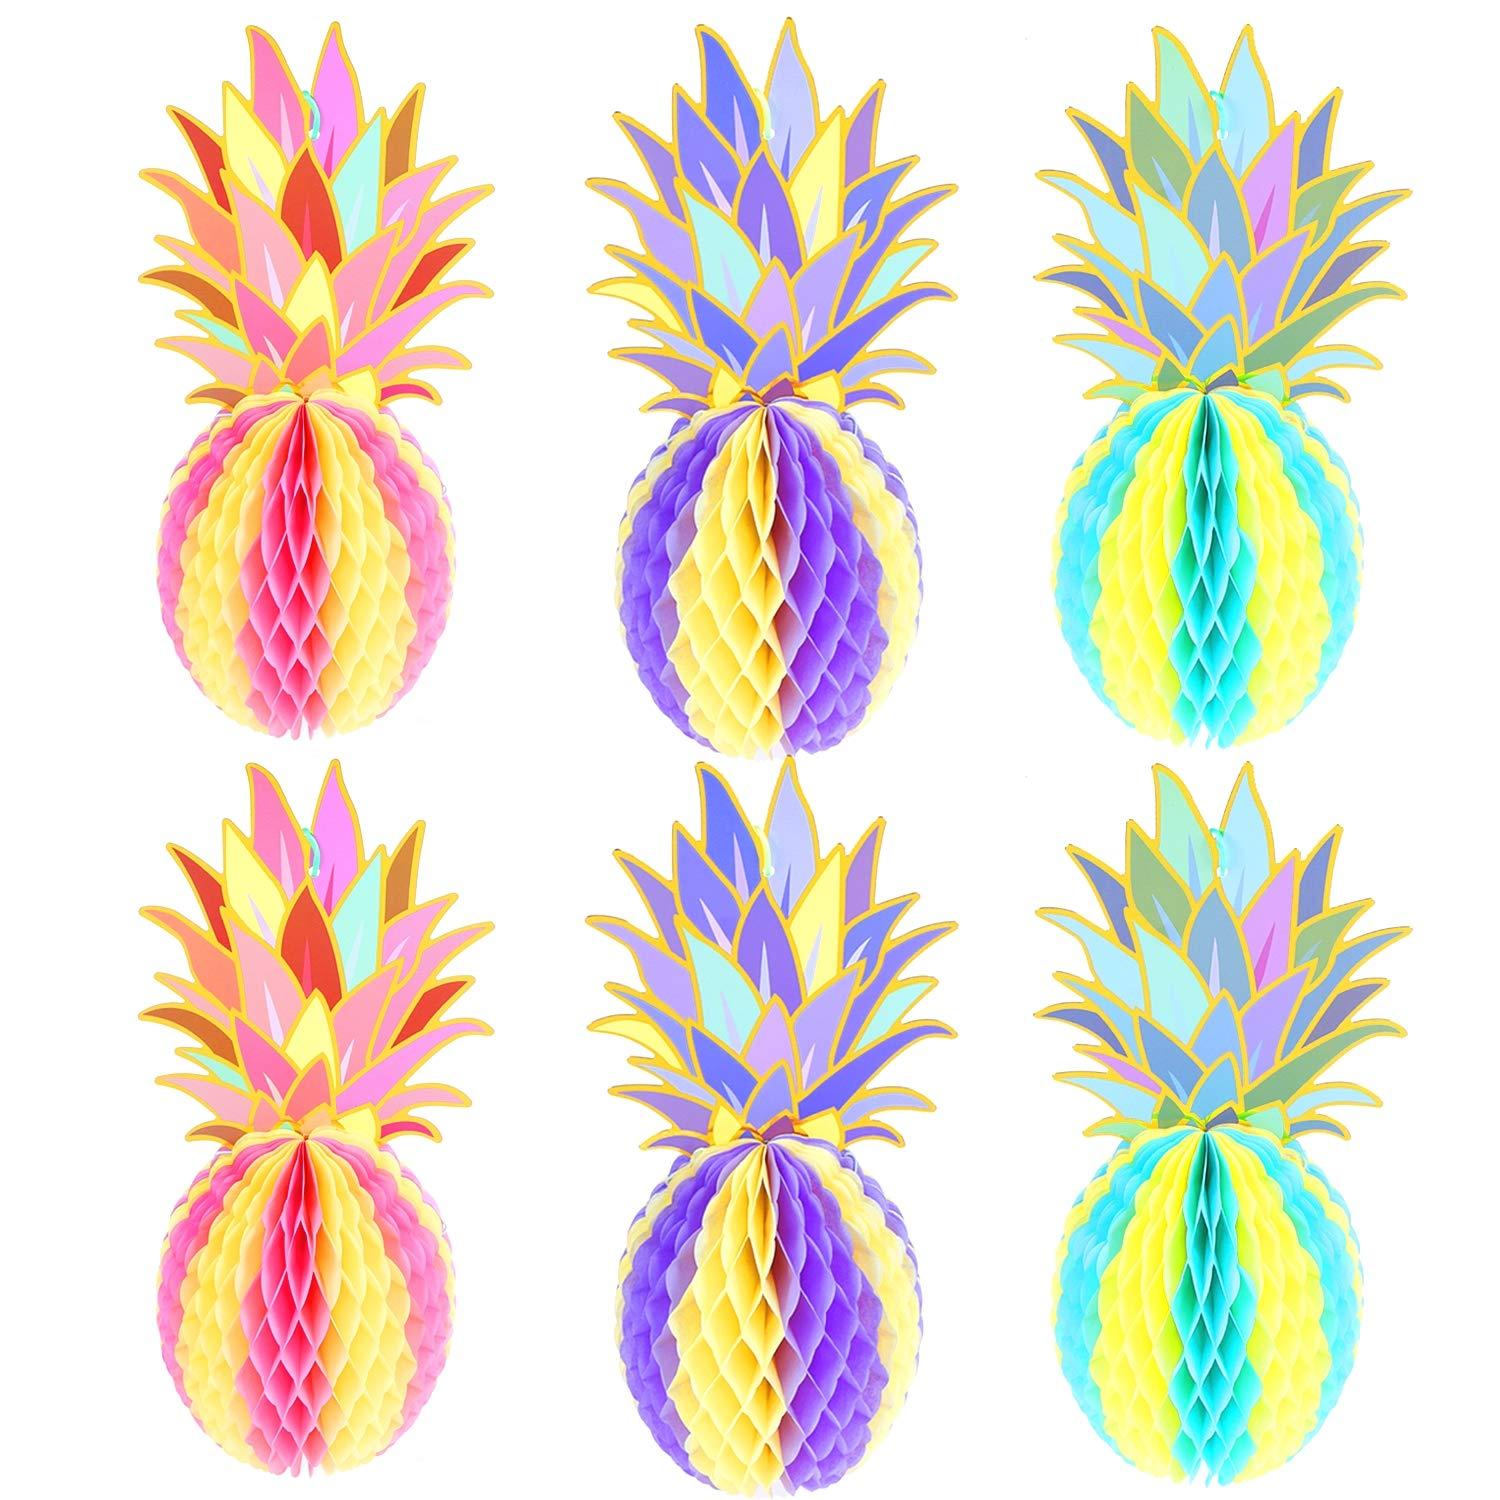 MeiMeiDa 32 Pcs 32 Inch Colorful Pineapple Honeycomb Centerpieces, Tissue  Paper Pineapple Table Hanging Decoration for Tropical Hawaiian Luau Party  ...